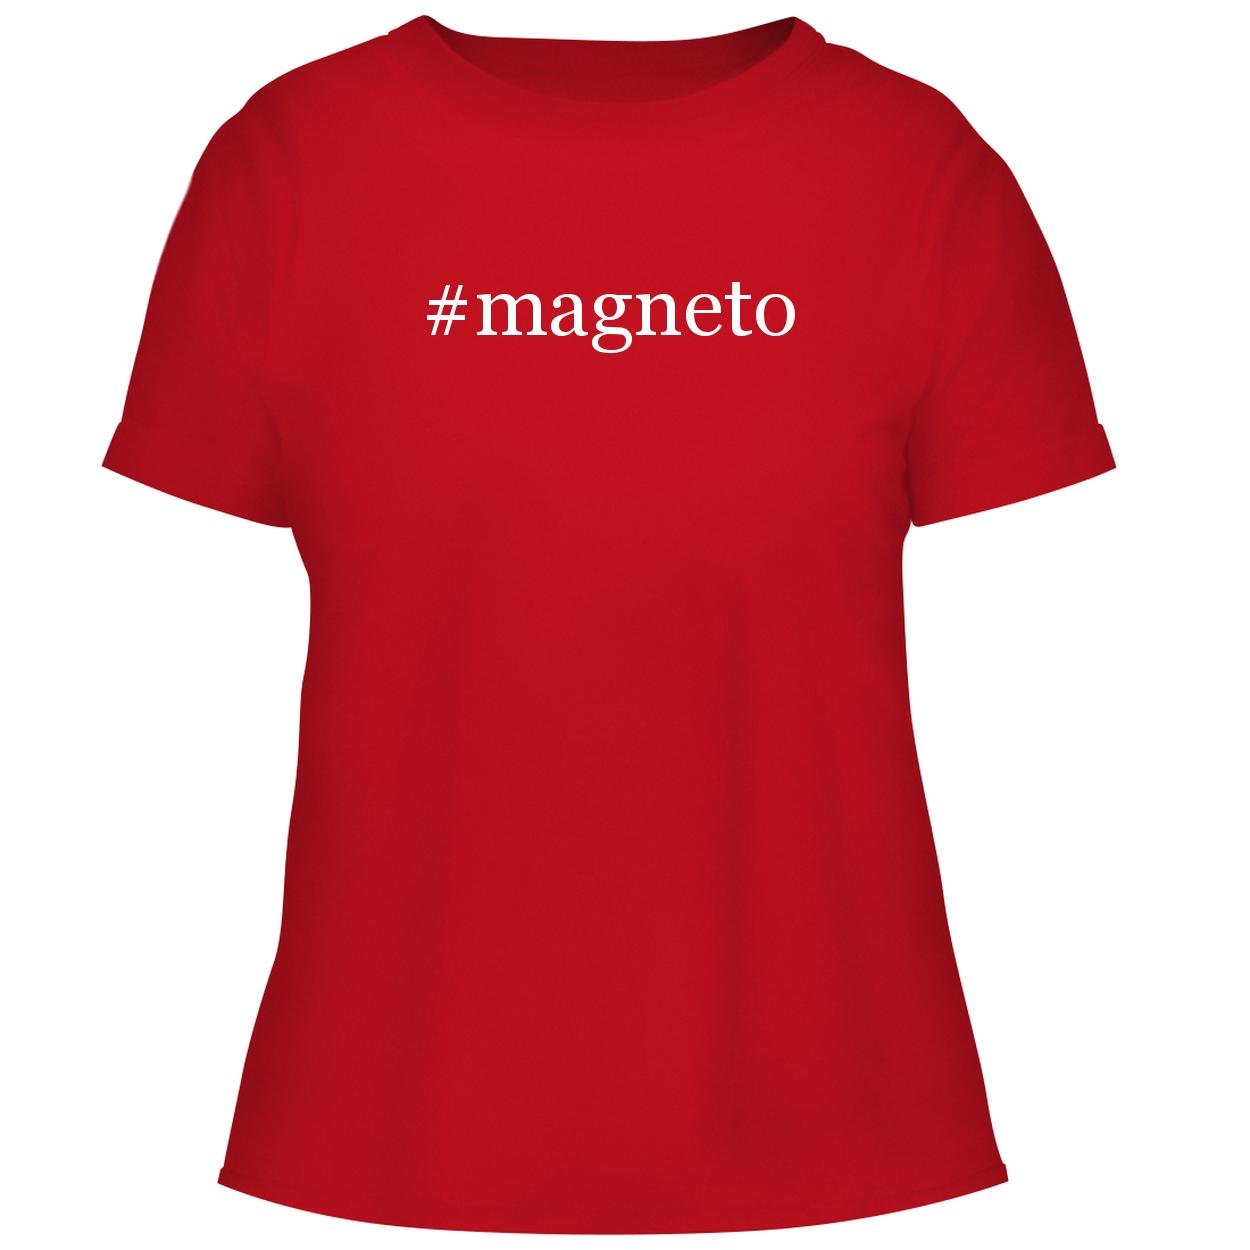 BH Cool Designs #Magneto - Cute Women's Graphic Tee, Red, X-Large